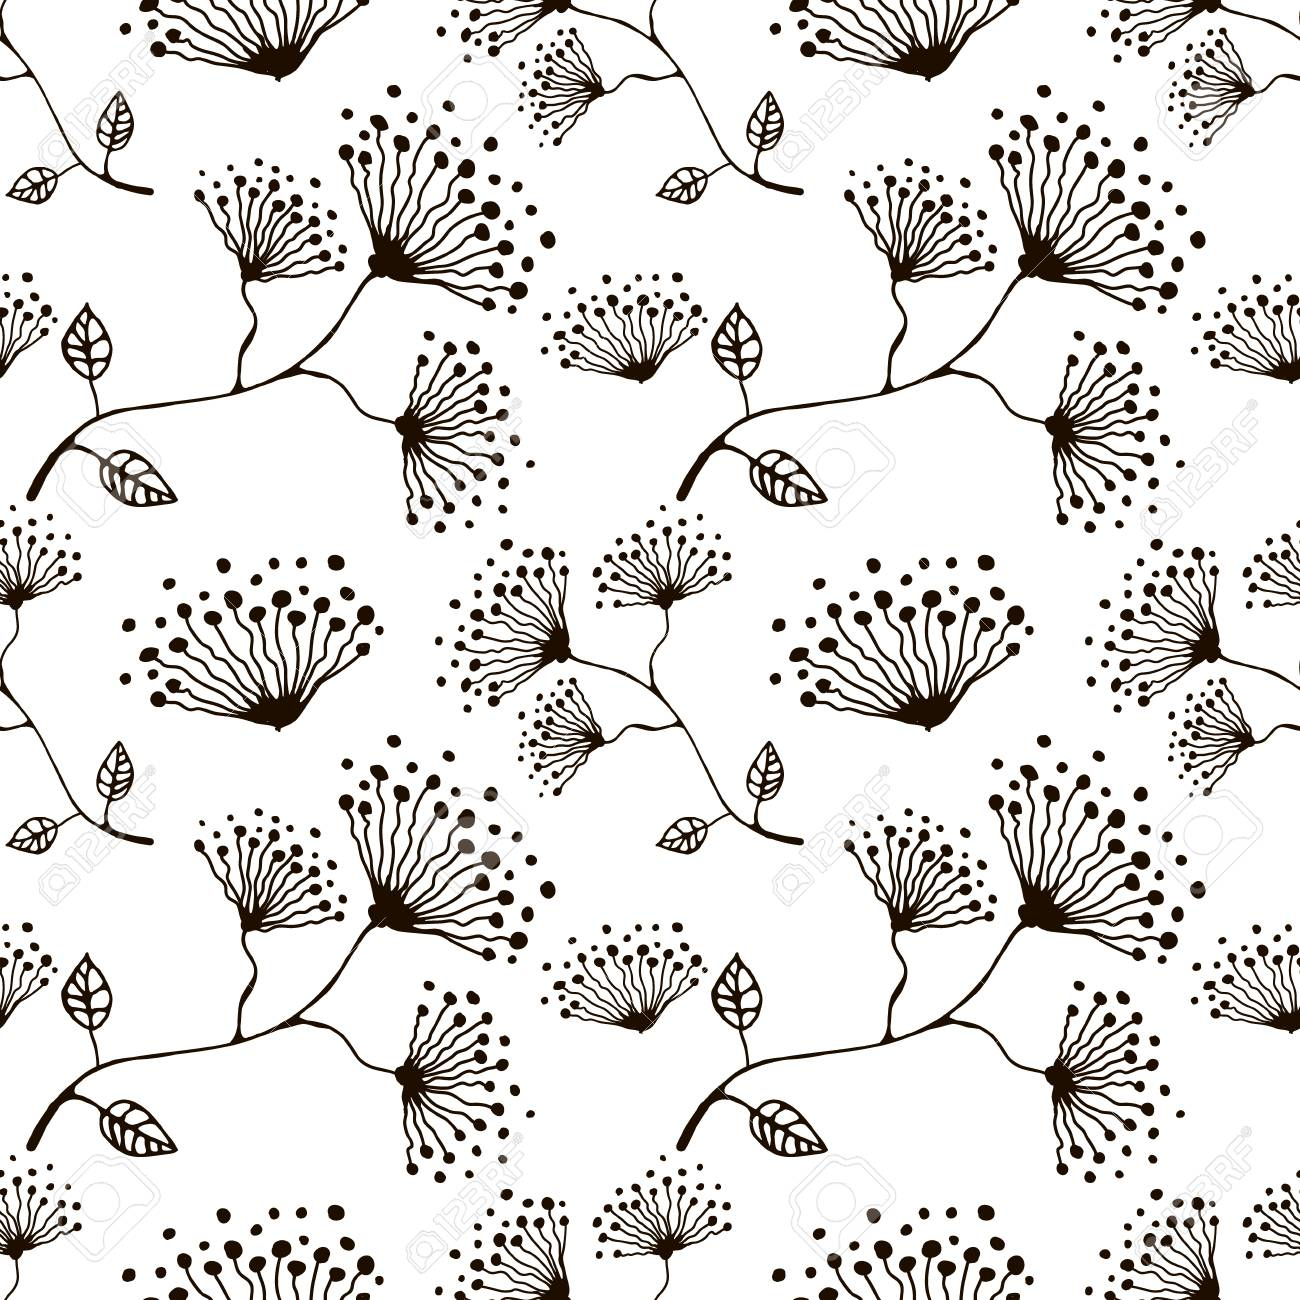 Seamless Vector Floral Pattern Hand Drawn Black And White